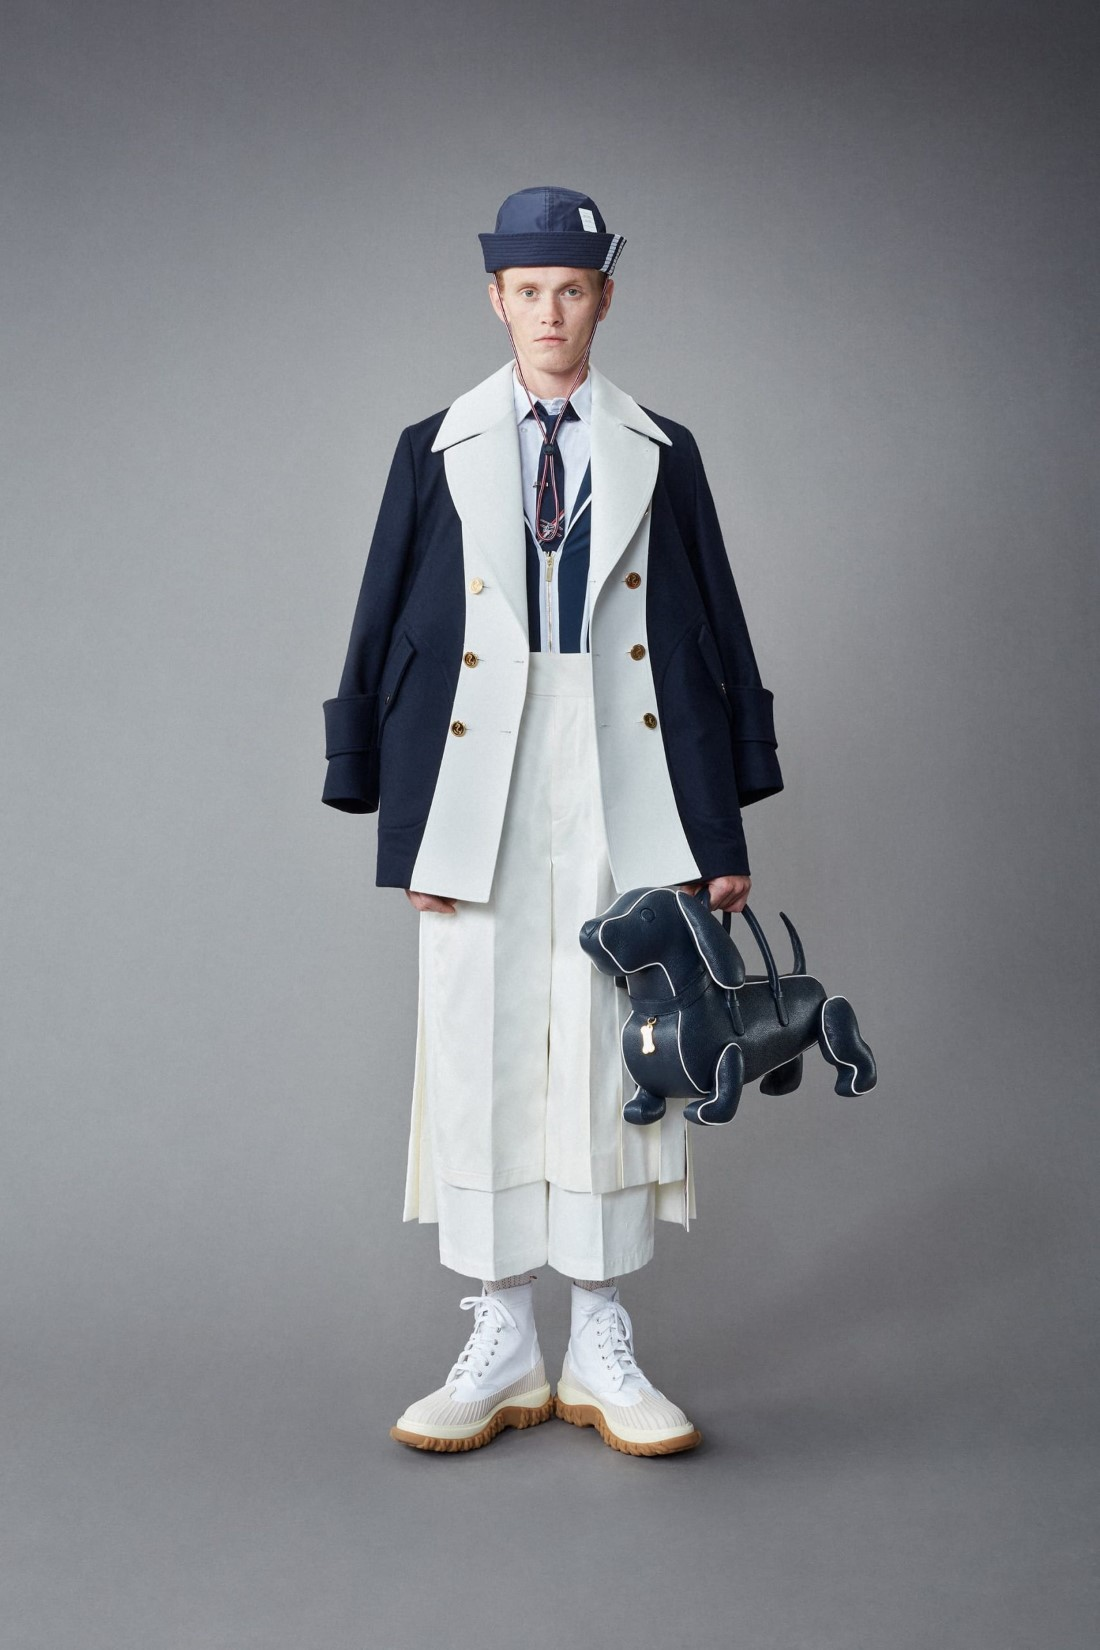 Thom Browne Collection Croisière Homme 2022